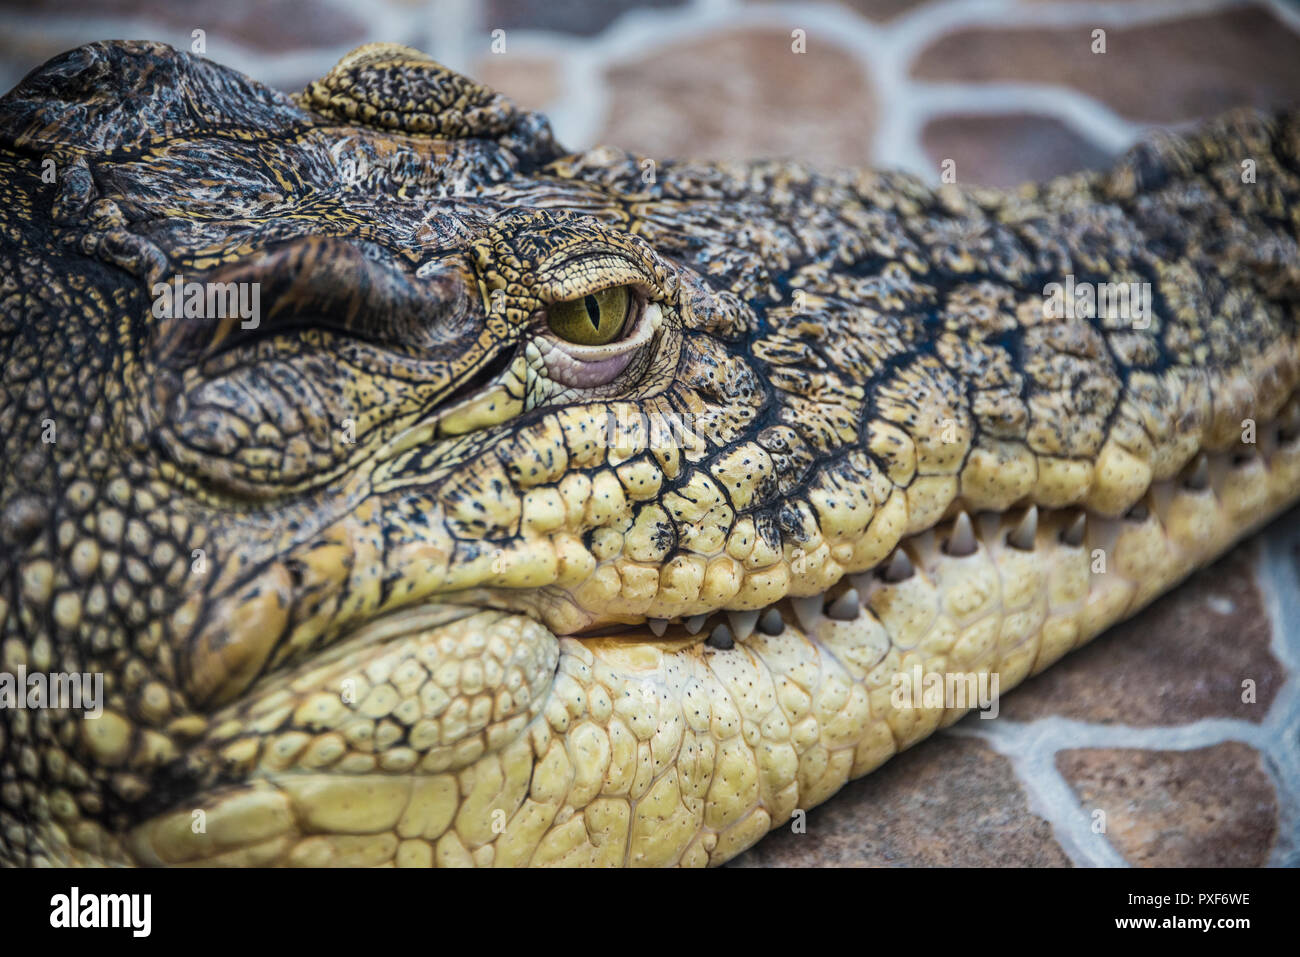 Crocodile head close-up of eyes and teeth. - Stock Image